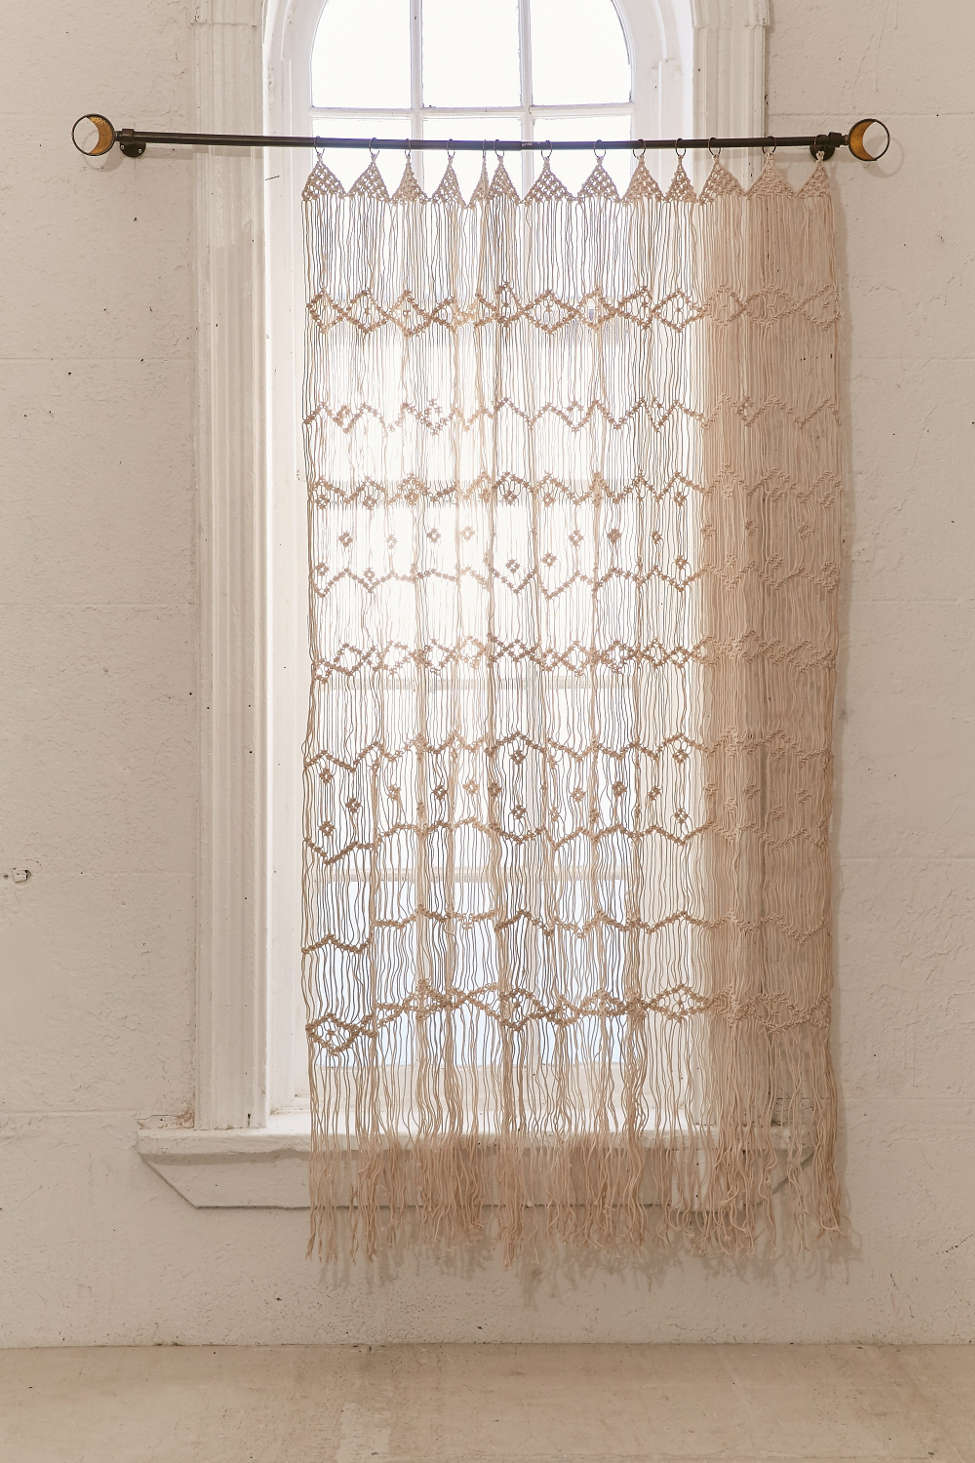 Wall Hanging macrame wall hanging | urban outfitters